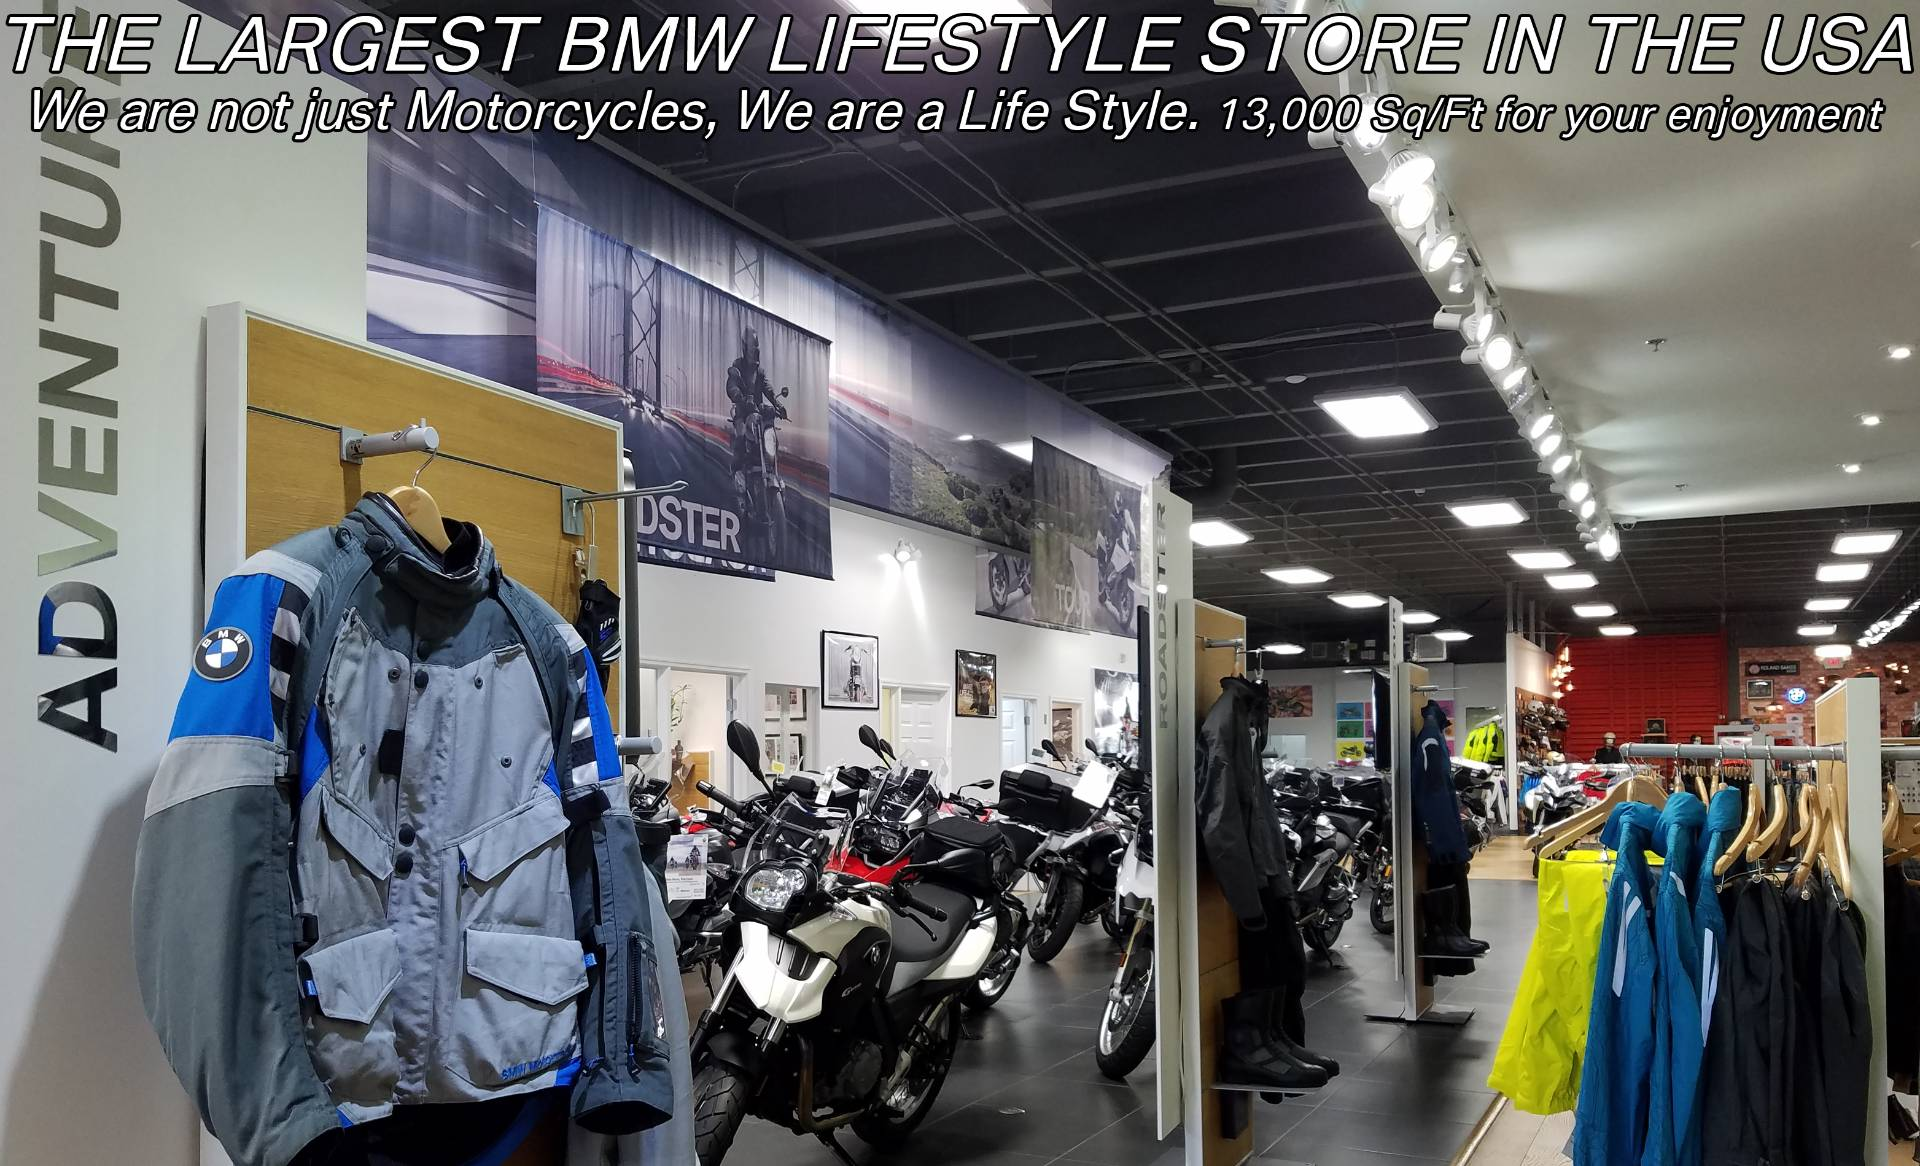 New 2020 2019 BMW R NineT for sale, BMW for sale, BMW Motorcycle Café Racer, new BMW Caffe, Cafe Racer, BMW. BMW Motorcycles of Miami, Motorcycles of Miami, Motorcycles Miami, New Motorcycles, Used Motorcycles, pre-owned. #BMWMotorcyclesOfMiami #MotorcyclesOfMiami. - Photo 67